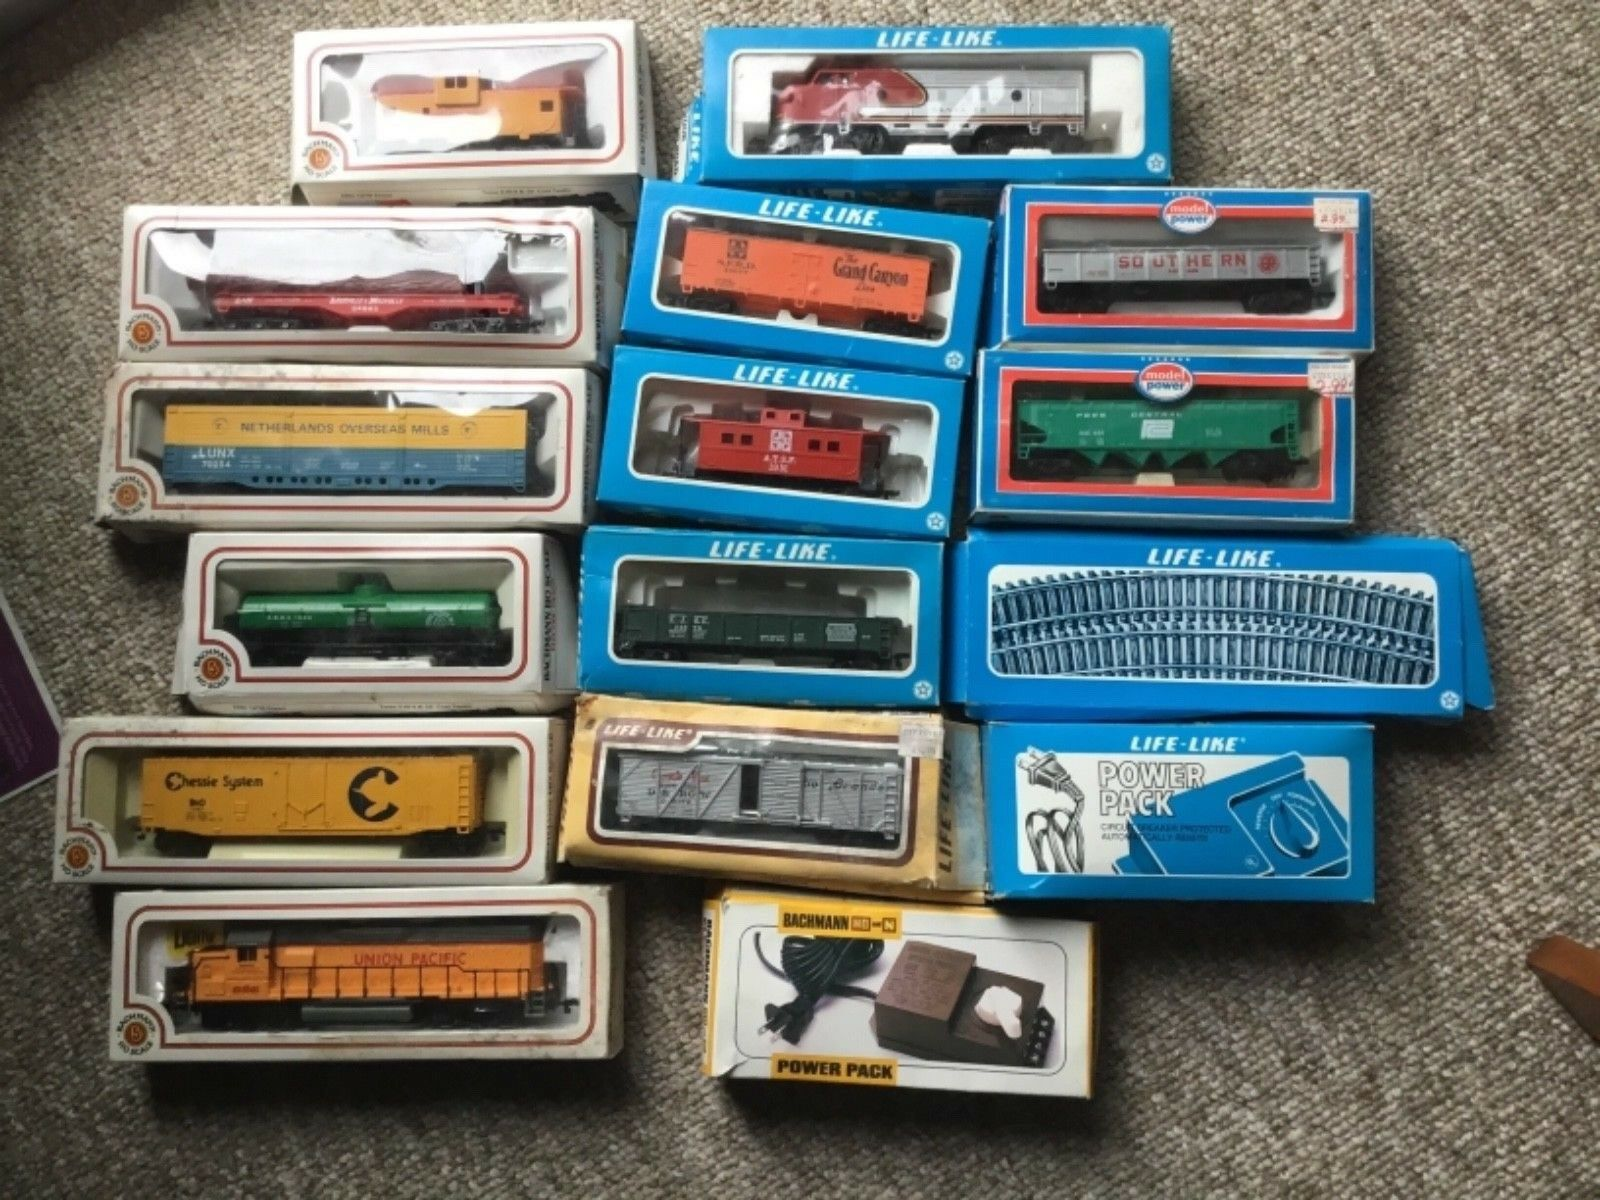 Lot of Bachuomon, LifeLike, modellololo energia, Ho Scale, 2 engines, 11 autos, 2 p packs